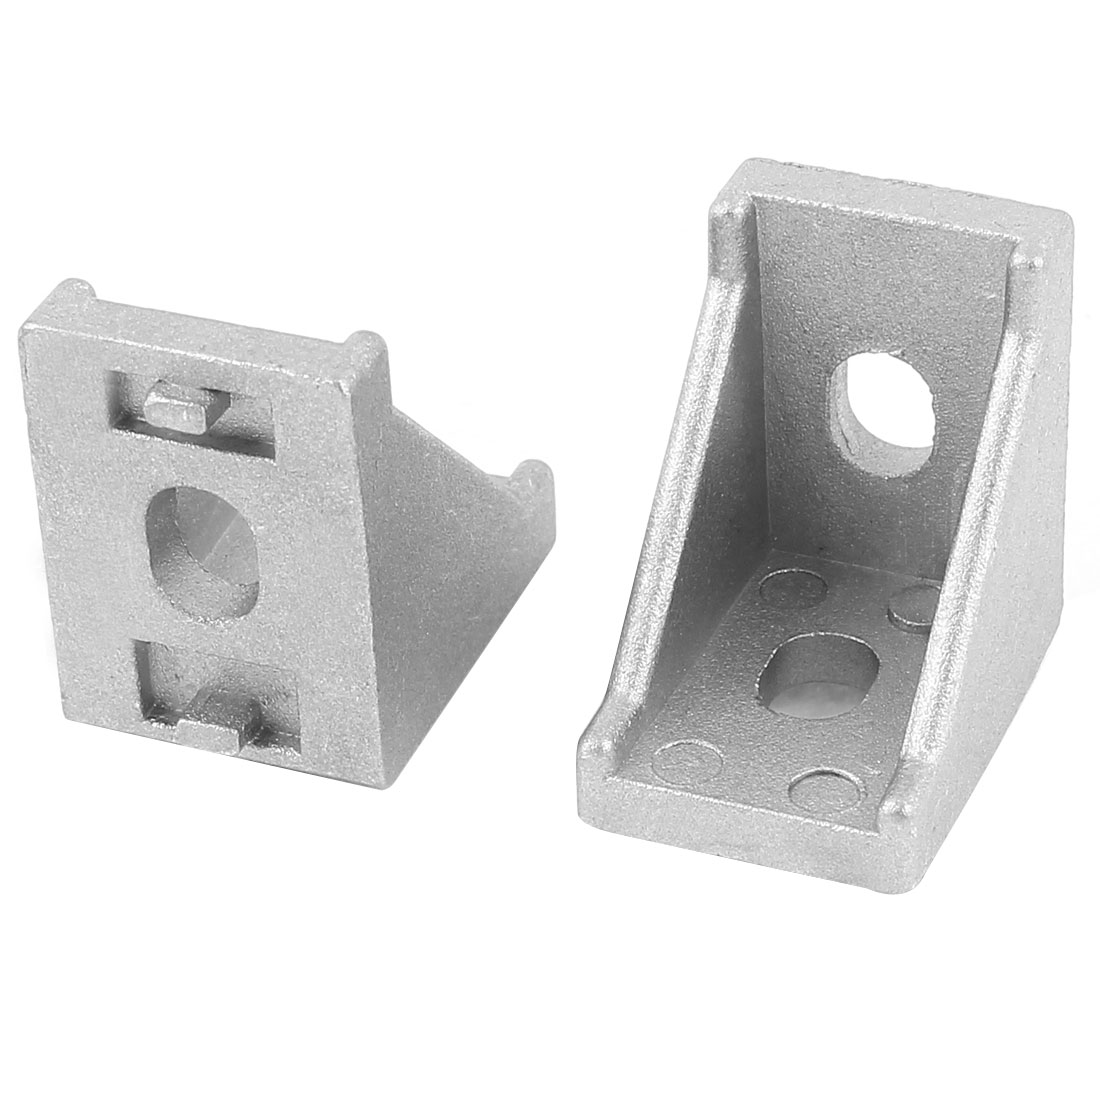 2 Pcs Silver Tone Metal 90 Degree Door Angle Bracket 20mm x 20mm